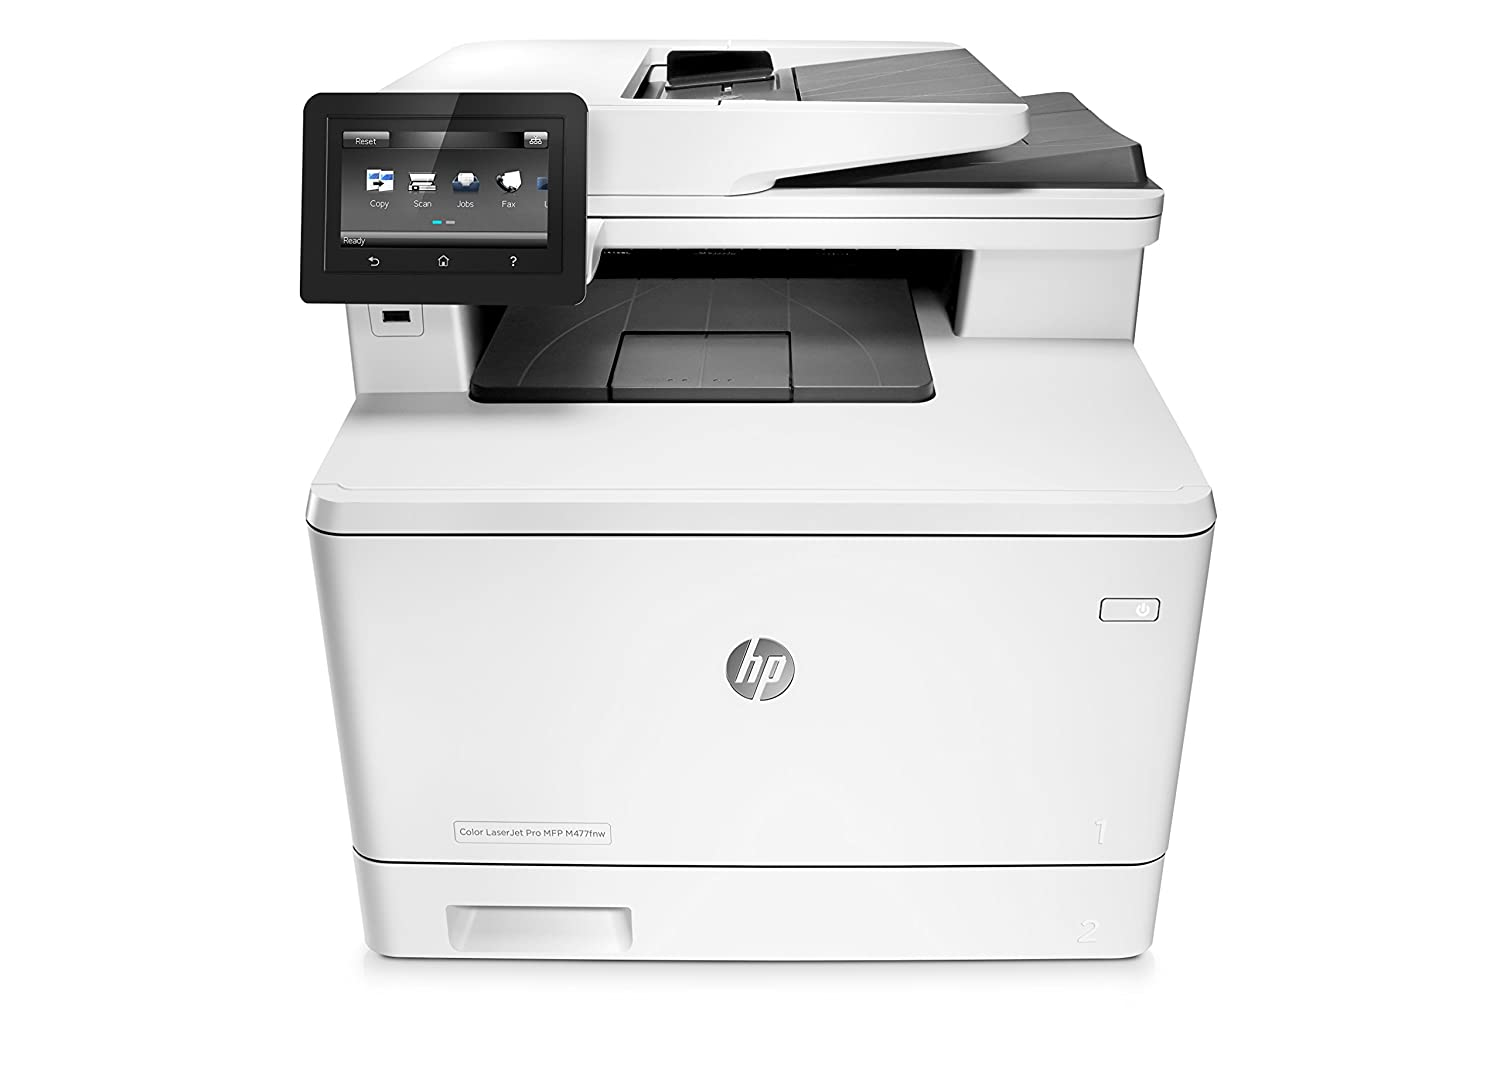 HP LaserJet Pro M477fnw All-in-One Wireless Color Laser Printer with Built-in Ethernet, Amazon Dash Replenishment ready (CF377A)